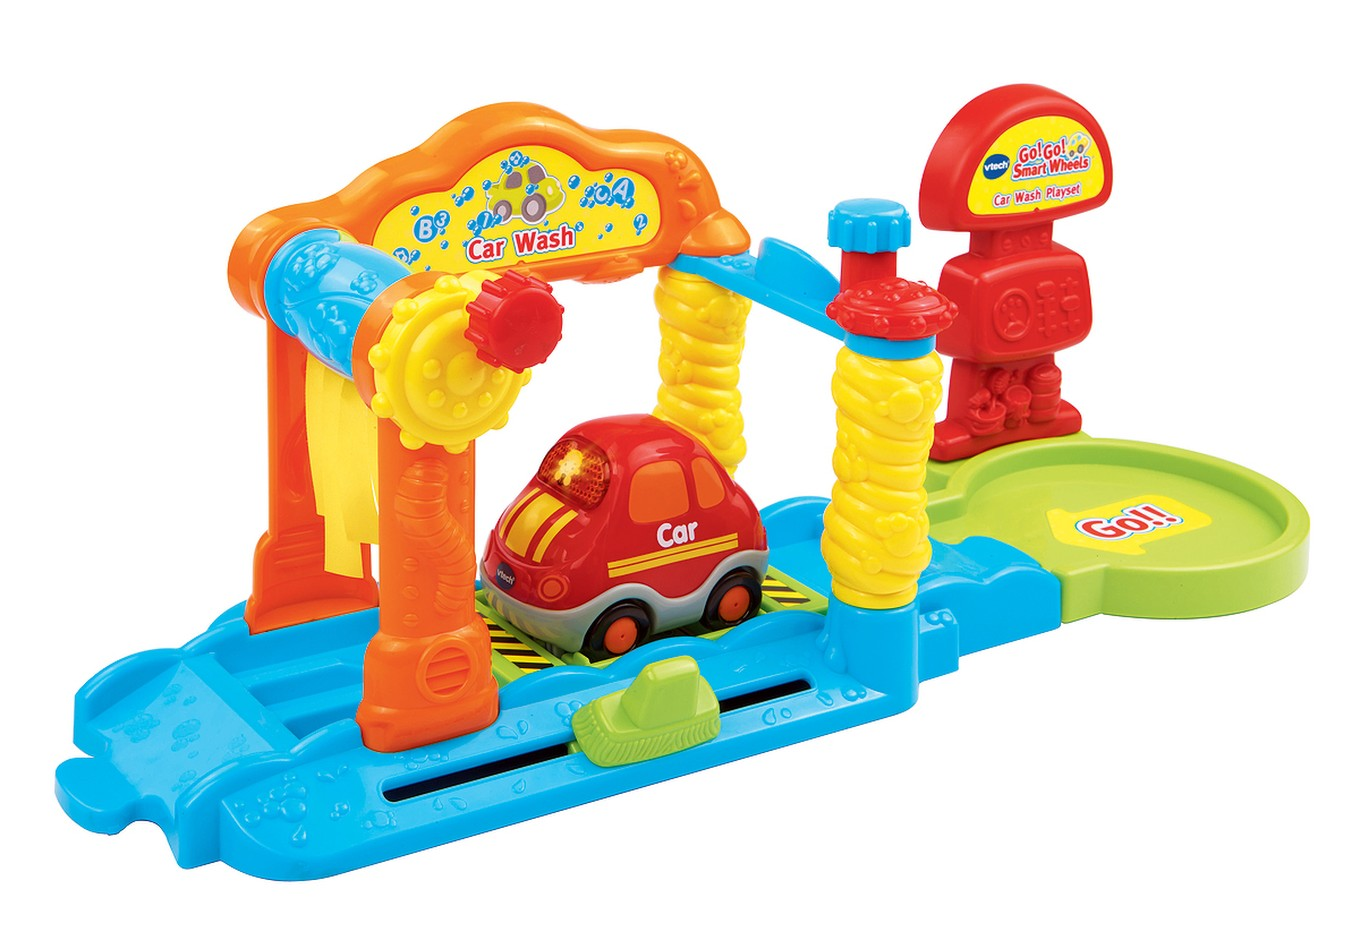 Go Go Smart Wheels Car Wash Playset